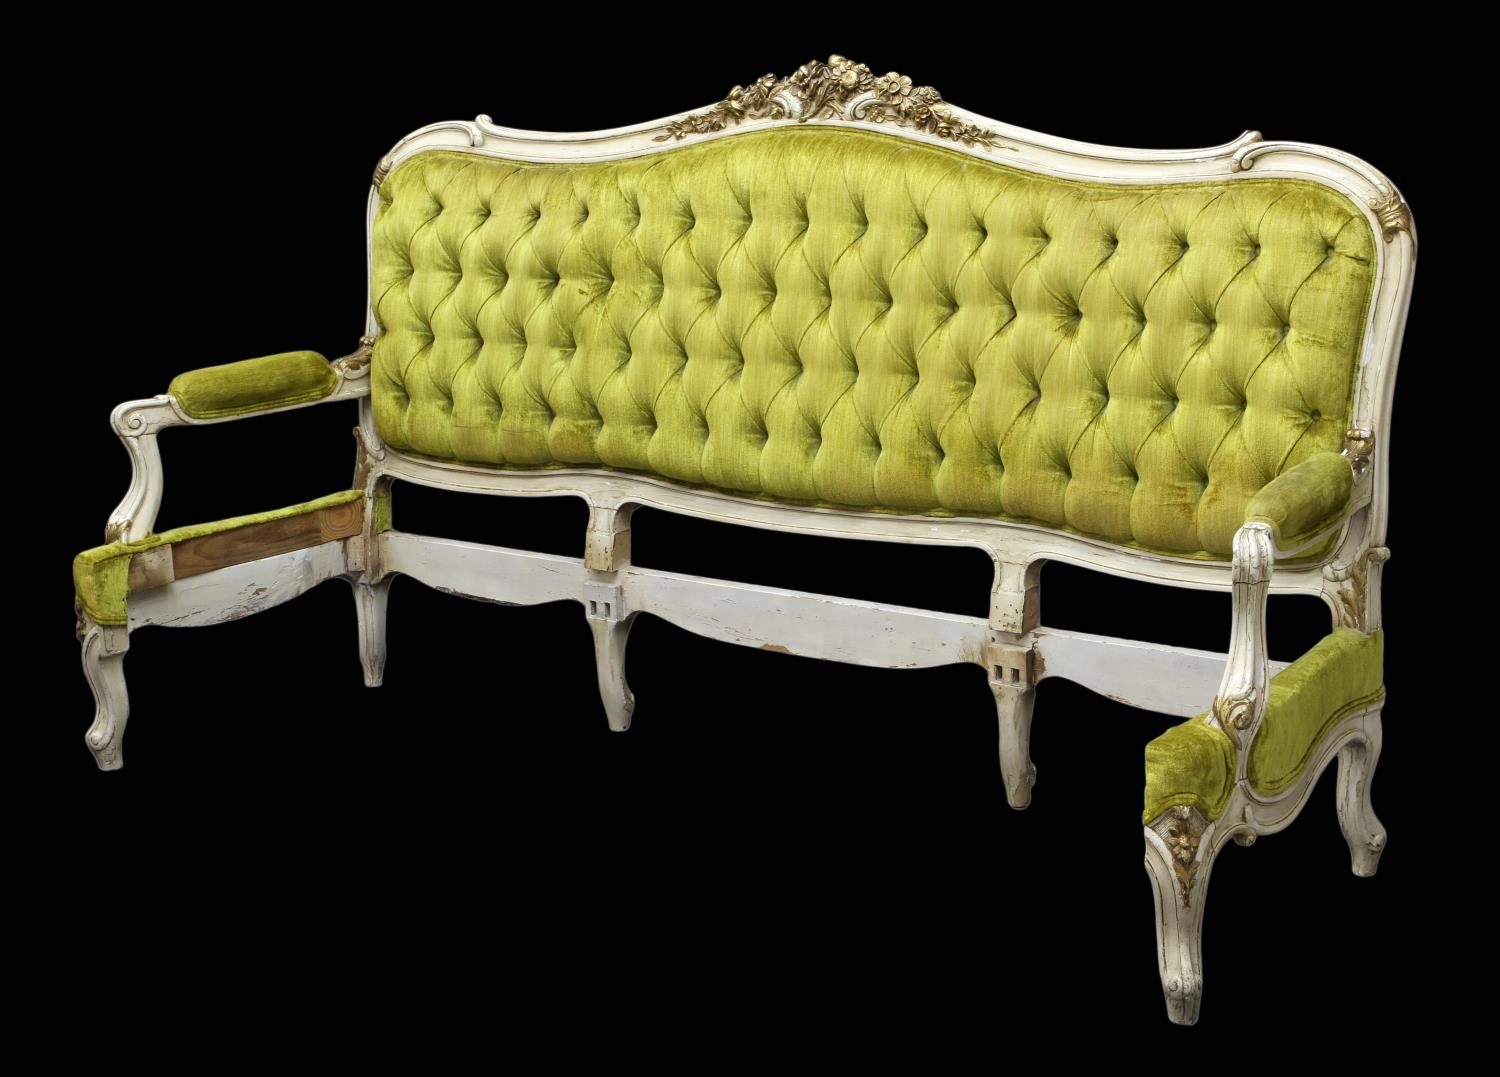 louis xv sofa frame king size headboard italian antiques design art firearms estates. Black Bedroom Furniture Sets. Home Design Ideas